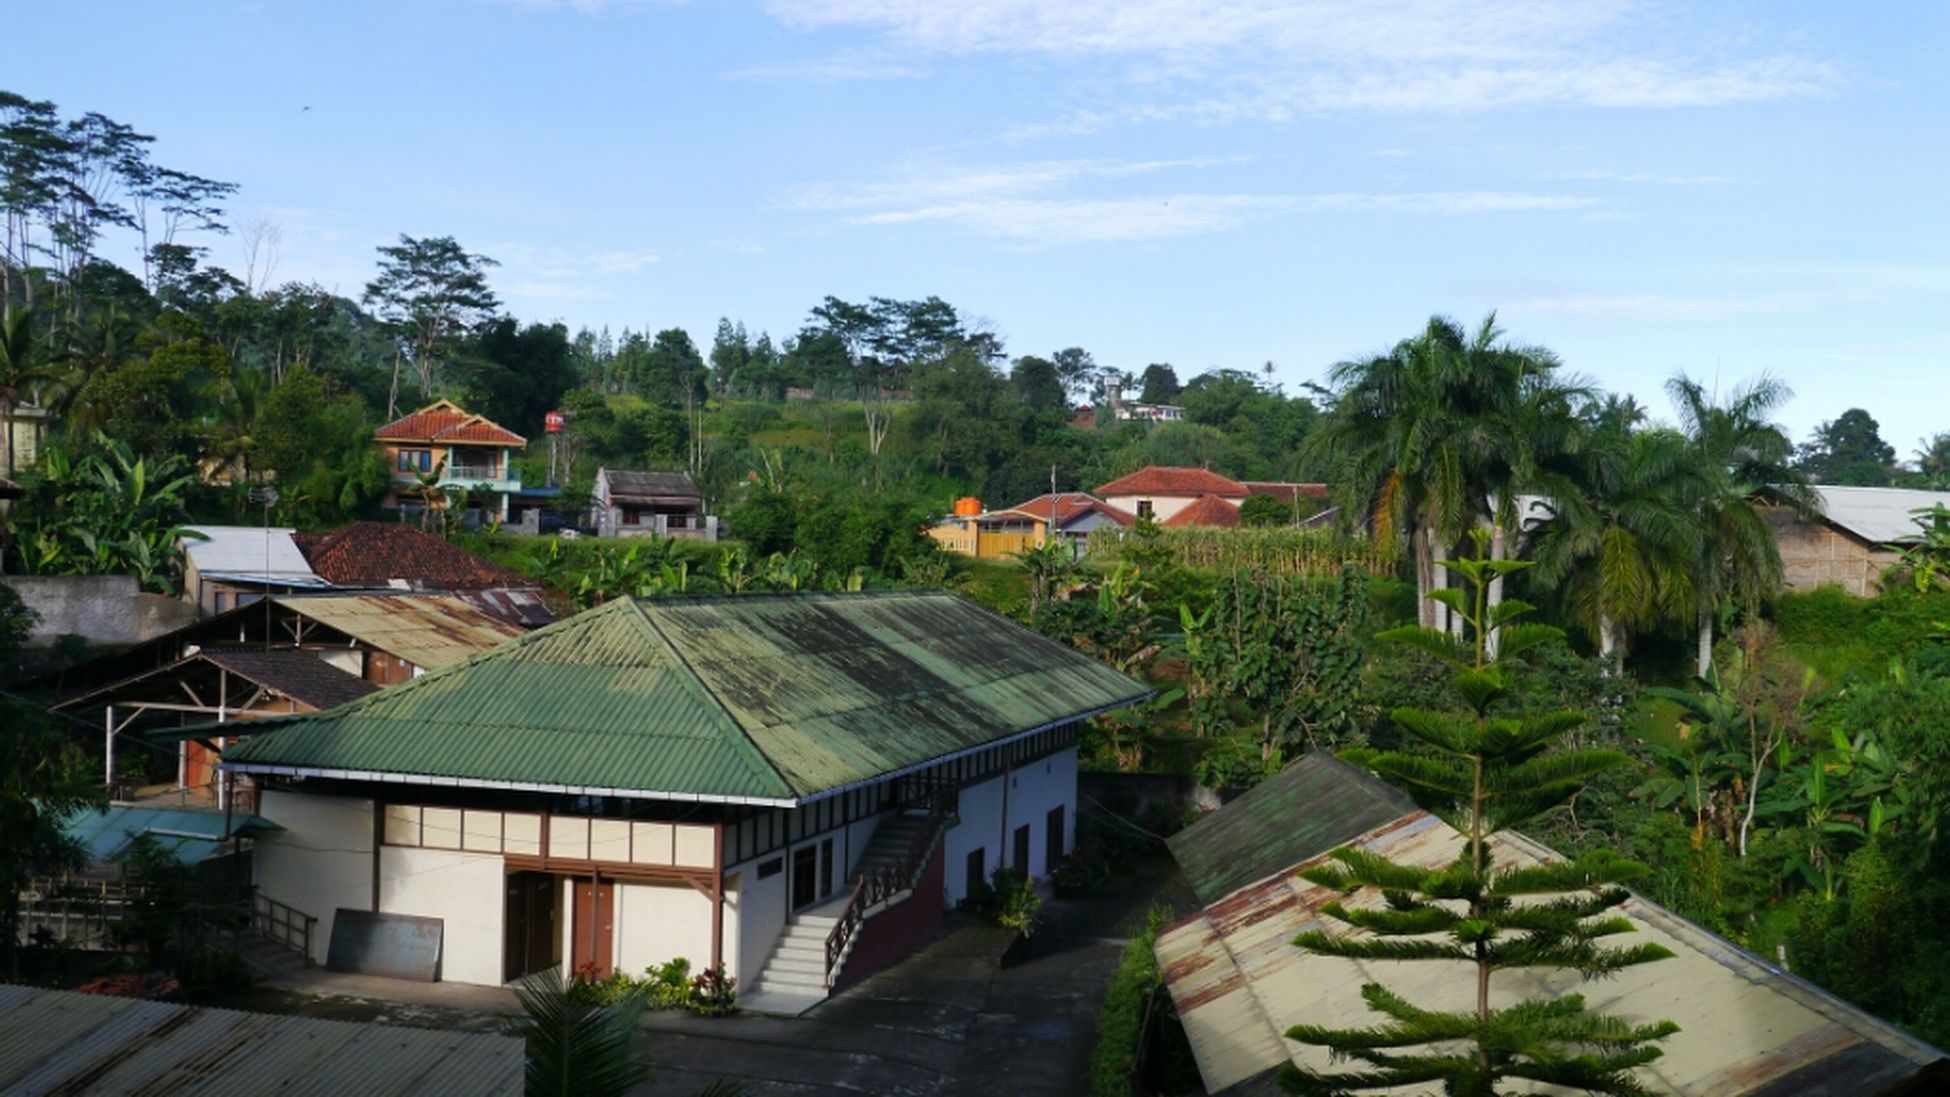 community, human settlement, leading, tropical climate, residential district